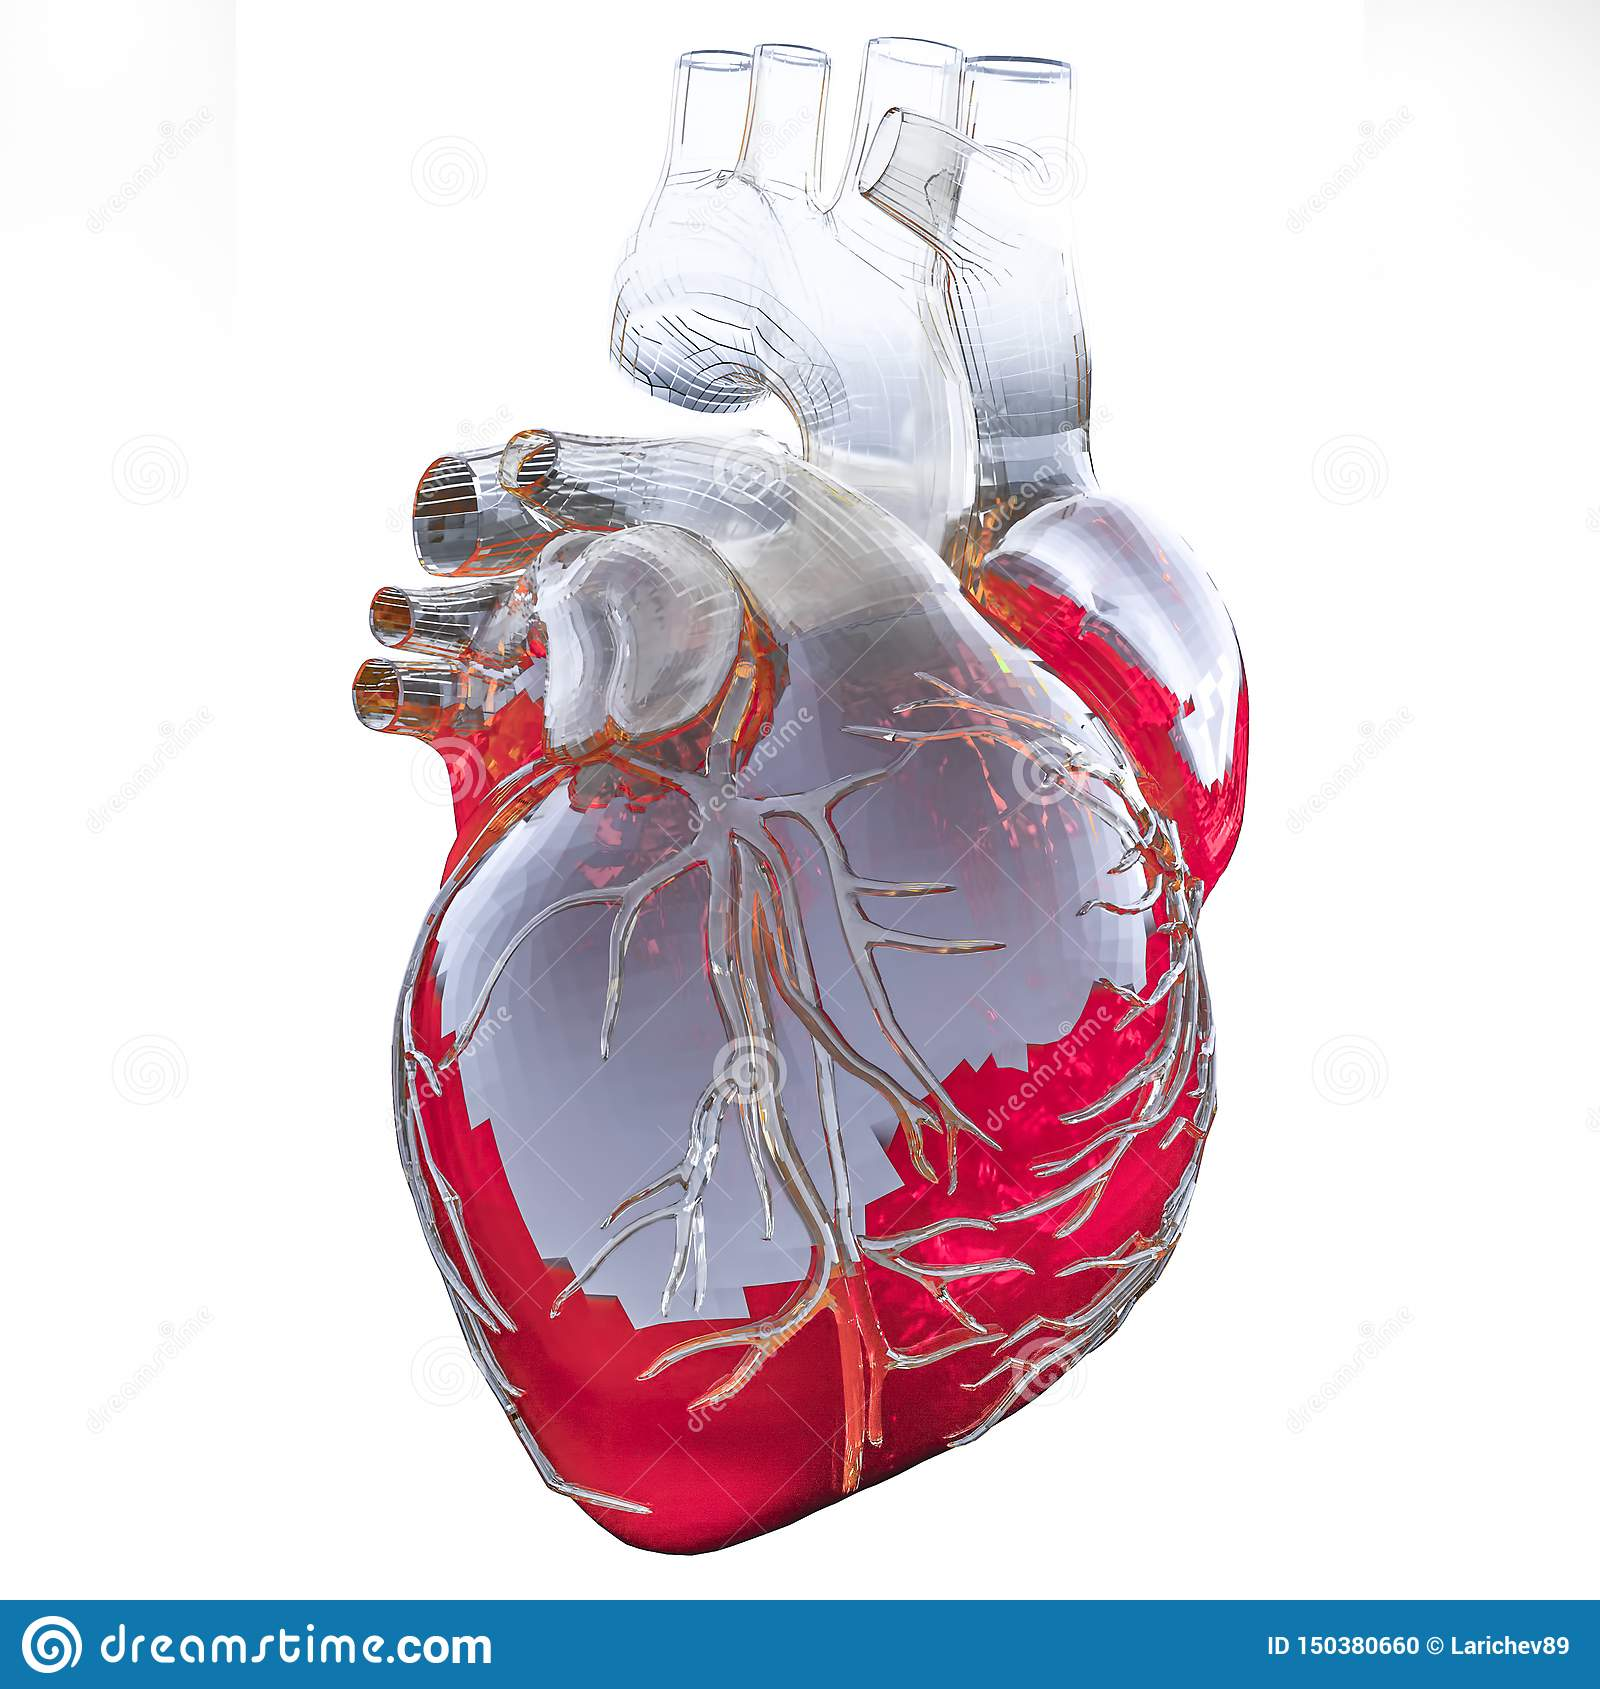 Medically accurate illustration of an artificial heart. 3D illustration